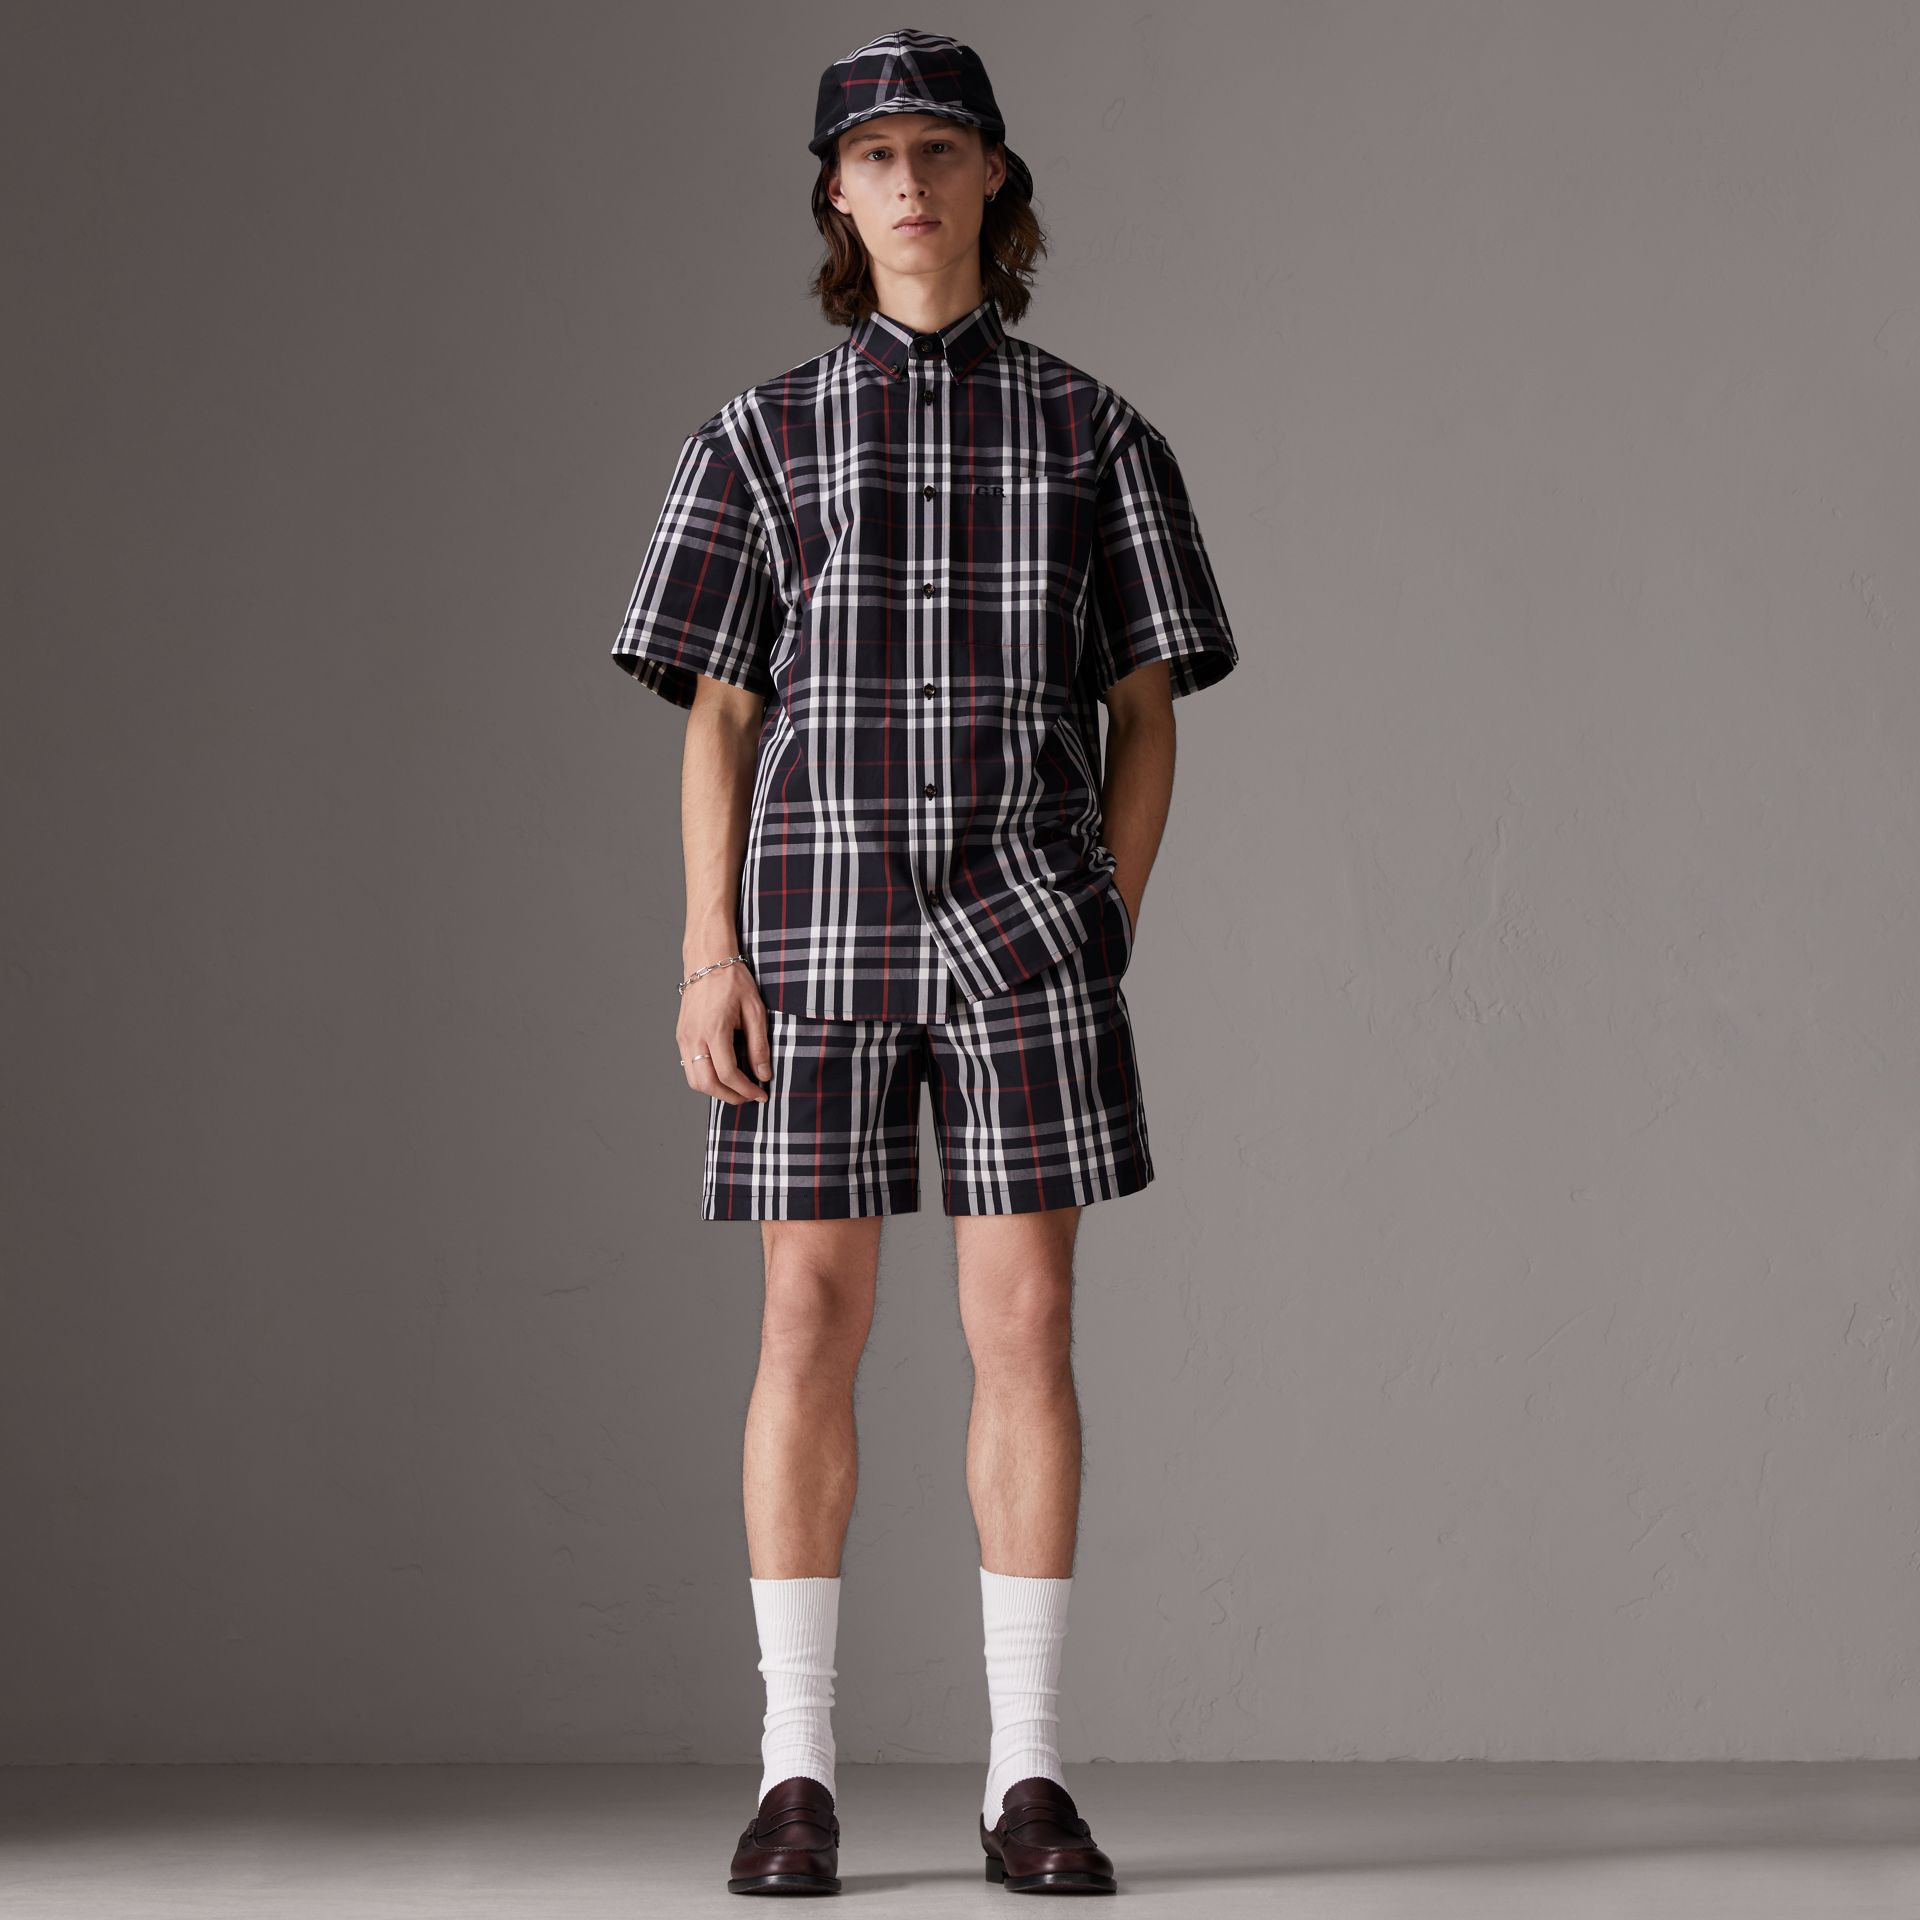 Gosha x Burberry Short-sleeve Check Shirt in Navy | Burberry United Kingdom - gallery image 2